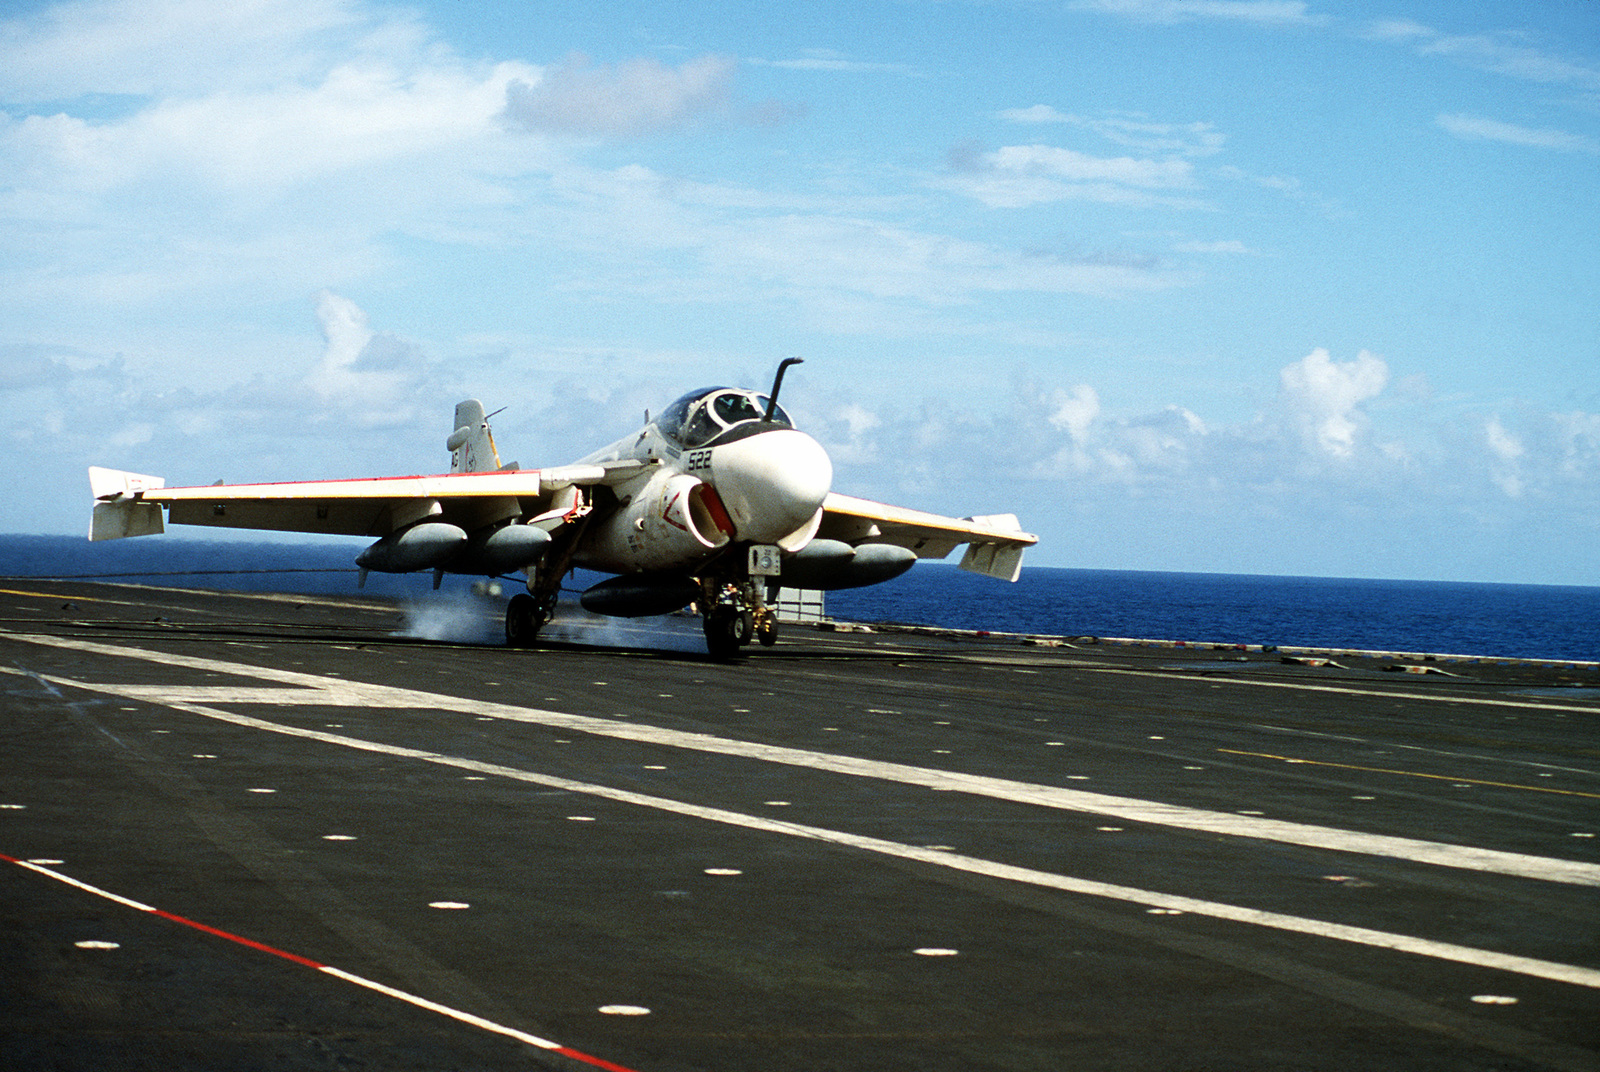 An A-6 Intruder aircraft engages an arresting cable after landing aboard the aircraft carrier USS SARATOGA (CV60)